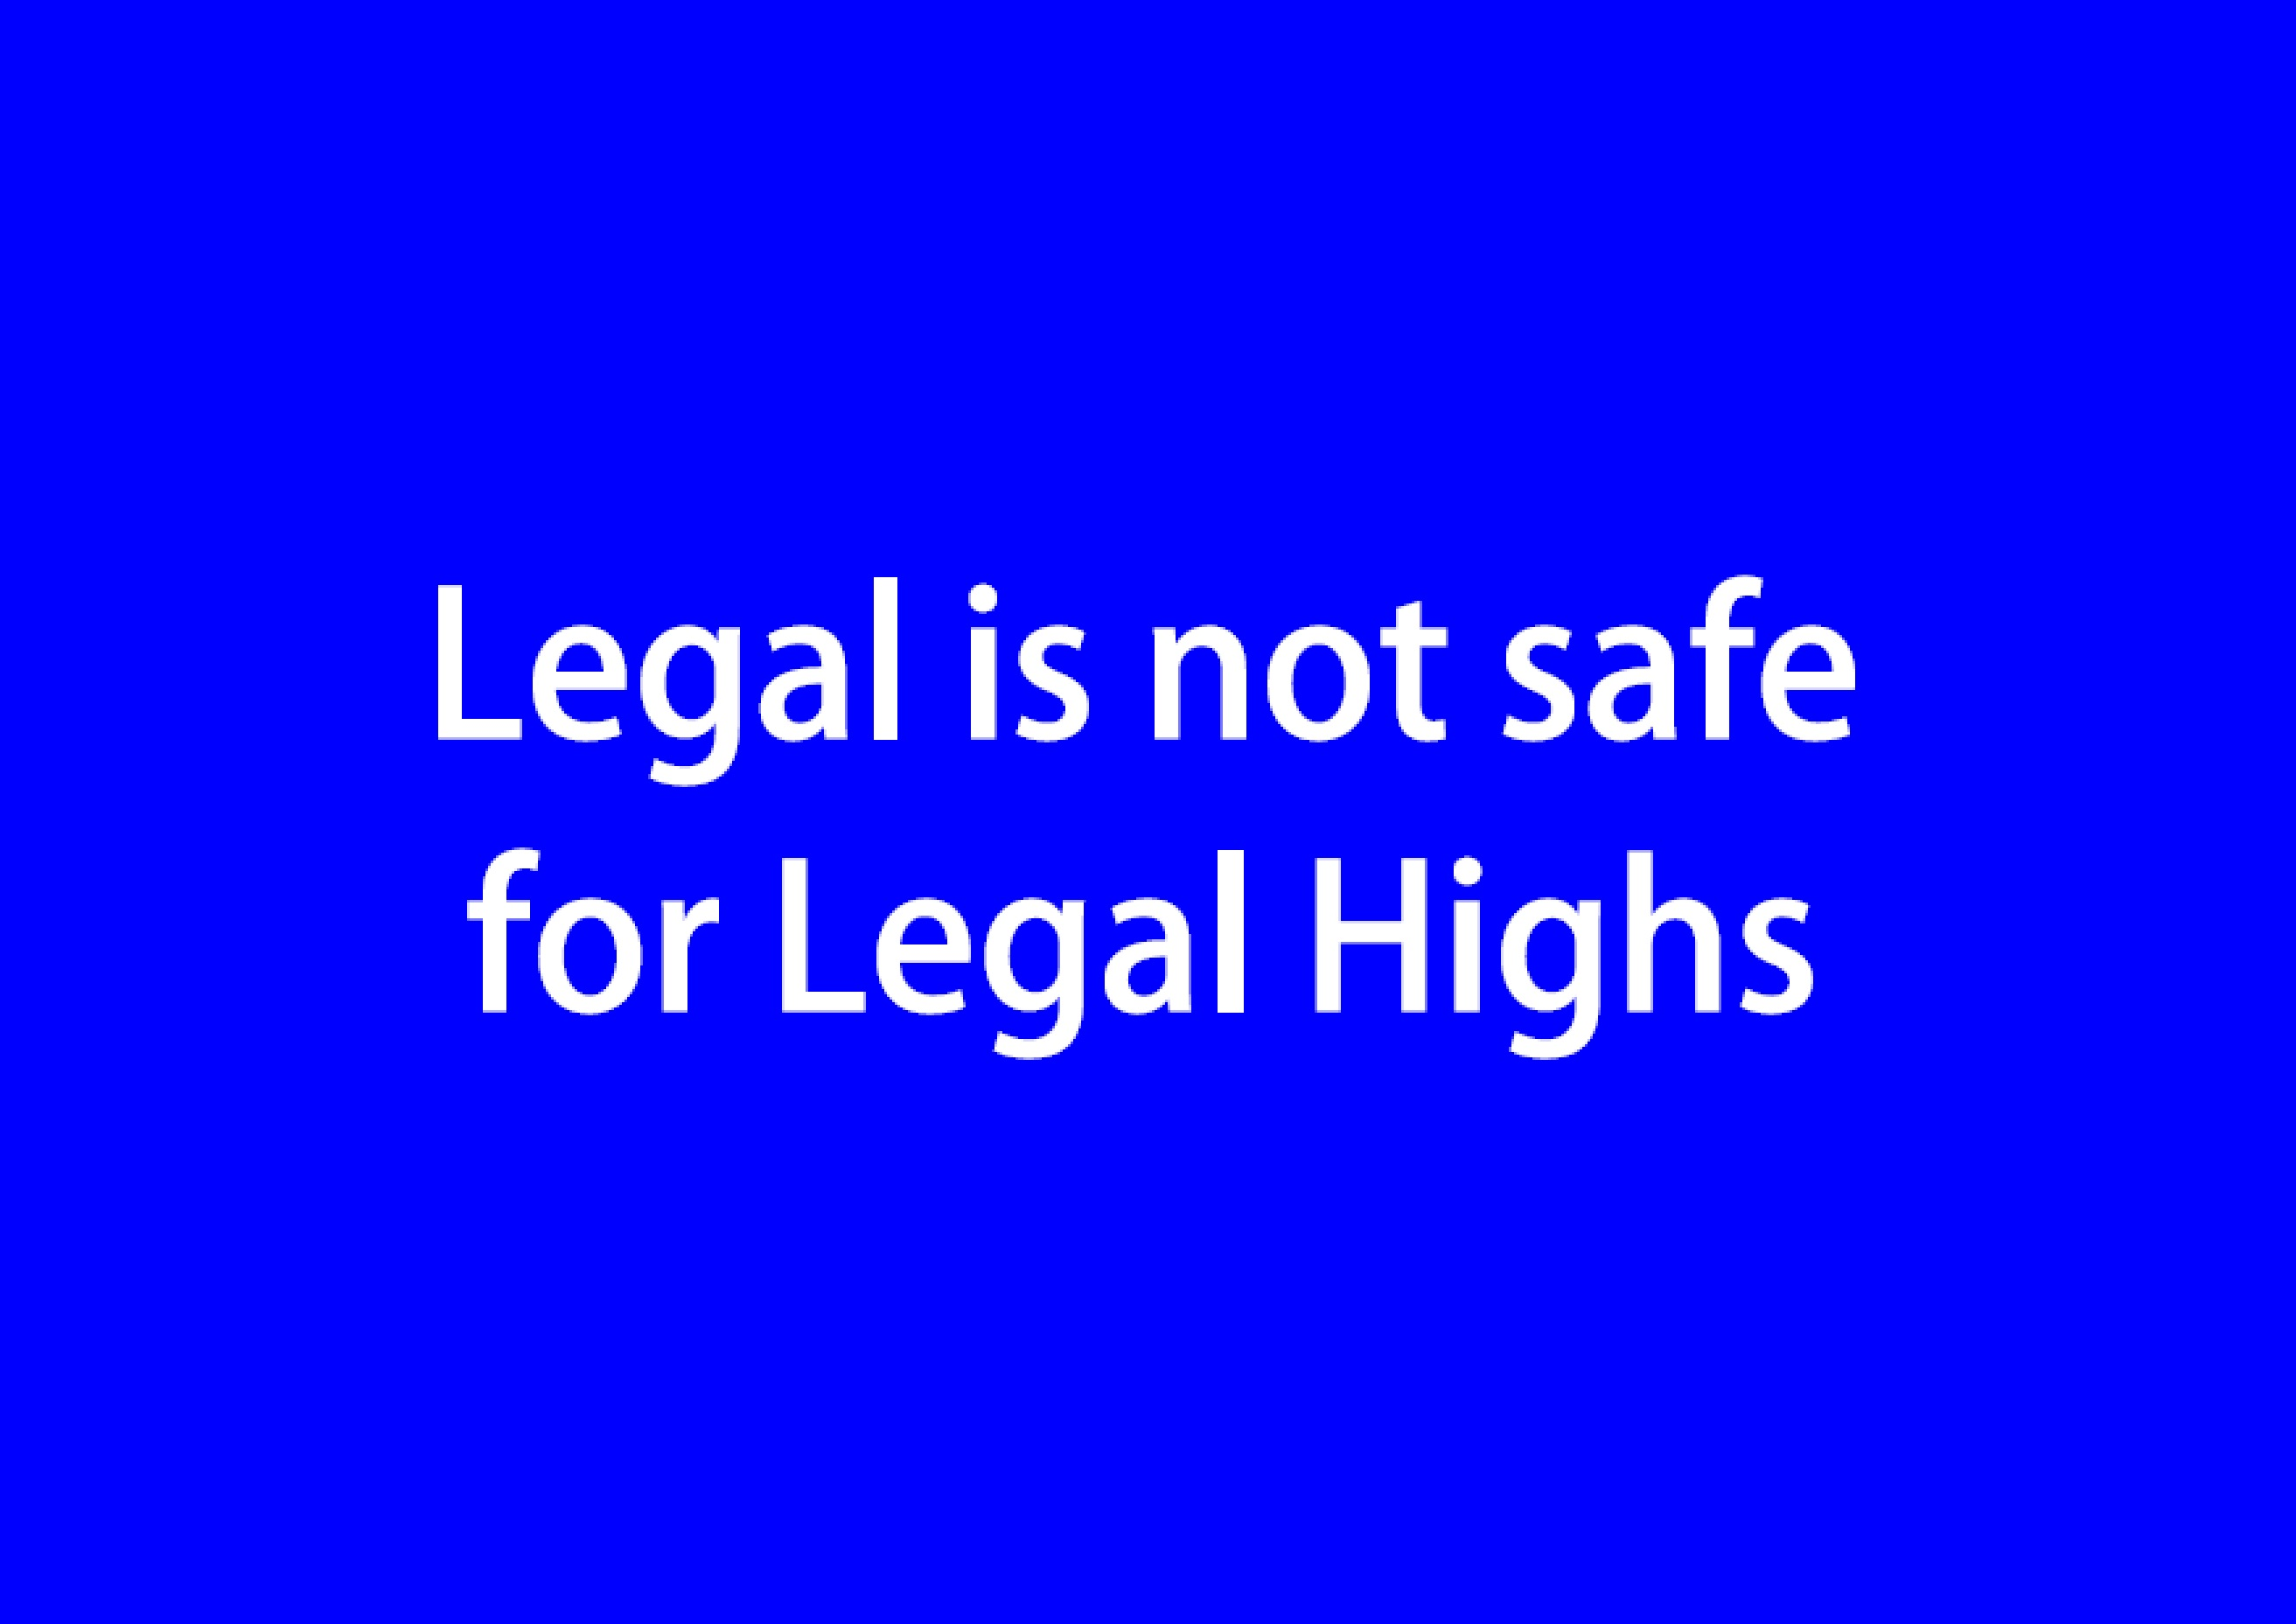 Resources – Ill-legal Highs